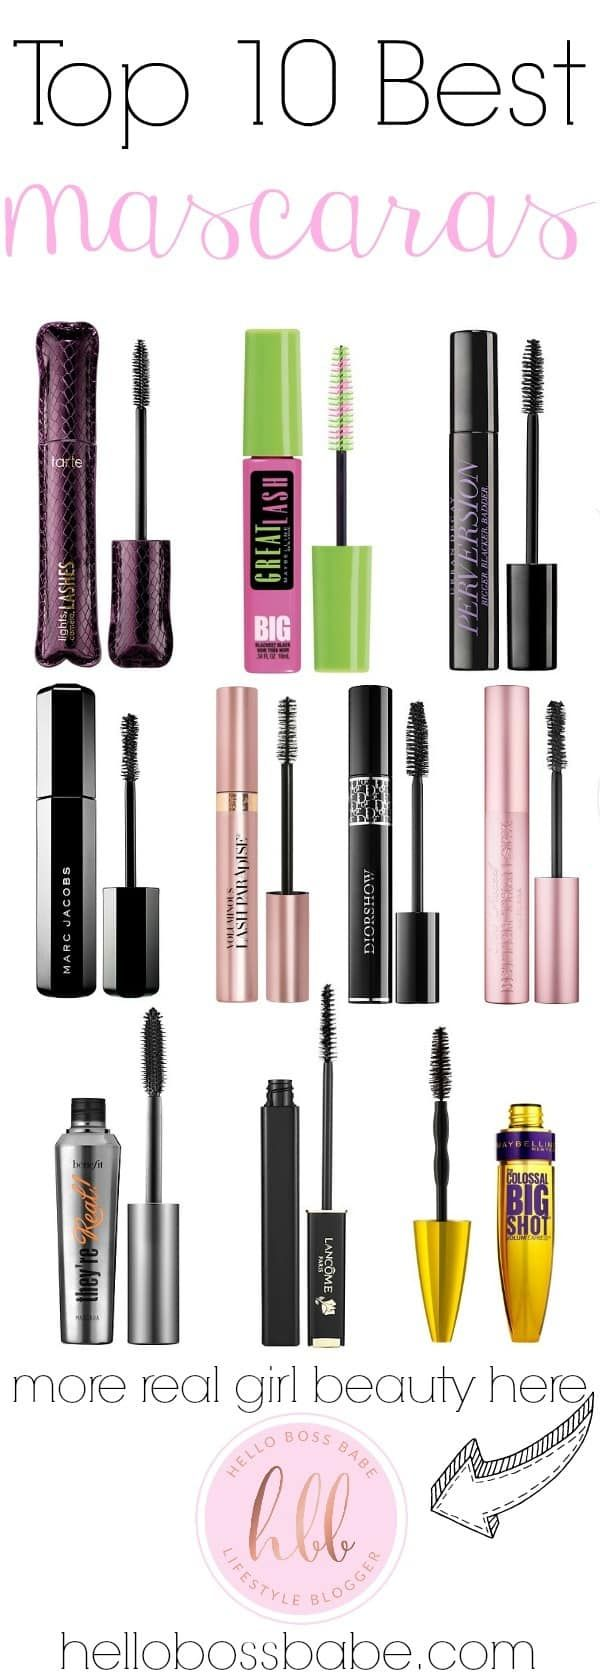 Since I was introduced to makeup, mascara has always been my absolute favorite. Like if I were stranded on a desert island, I would bring mascara. There is just something about a good mascara that can make you look a little more feminine and awake. I have had manyContinue Reading...